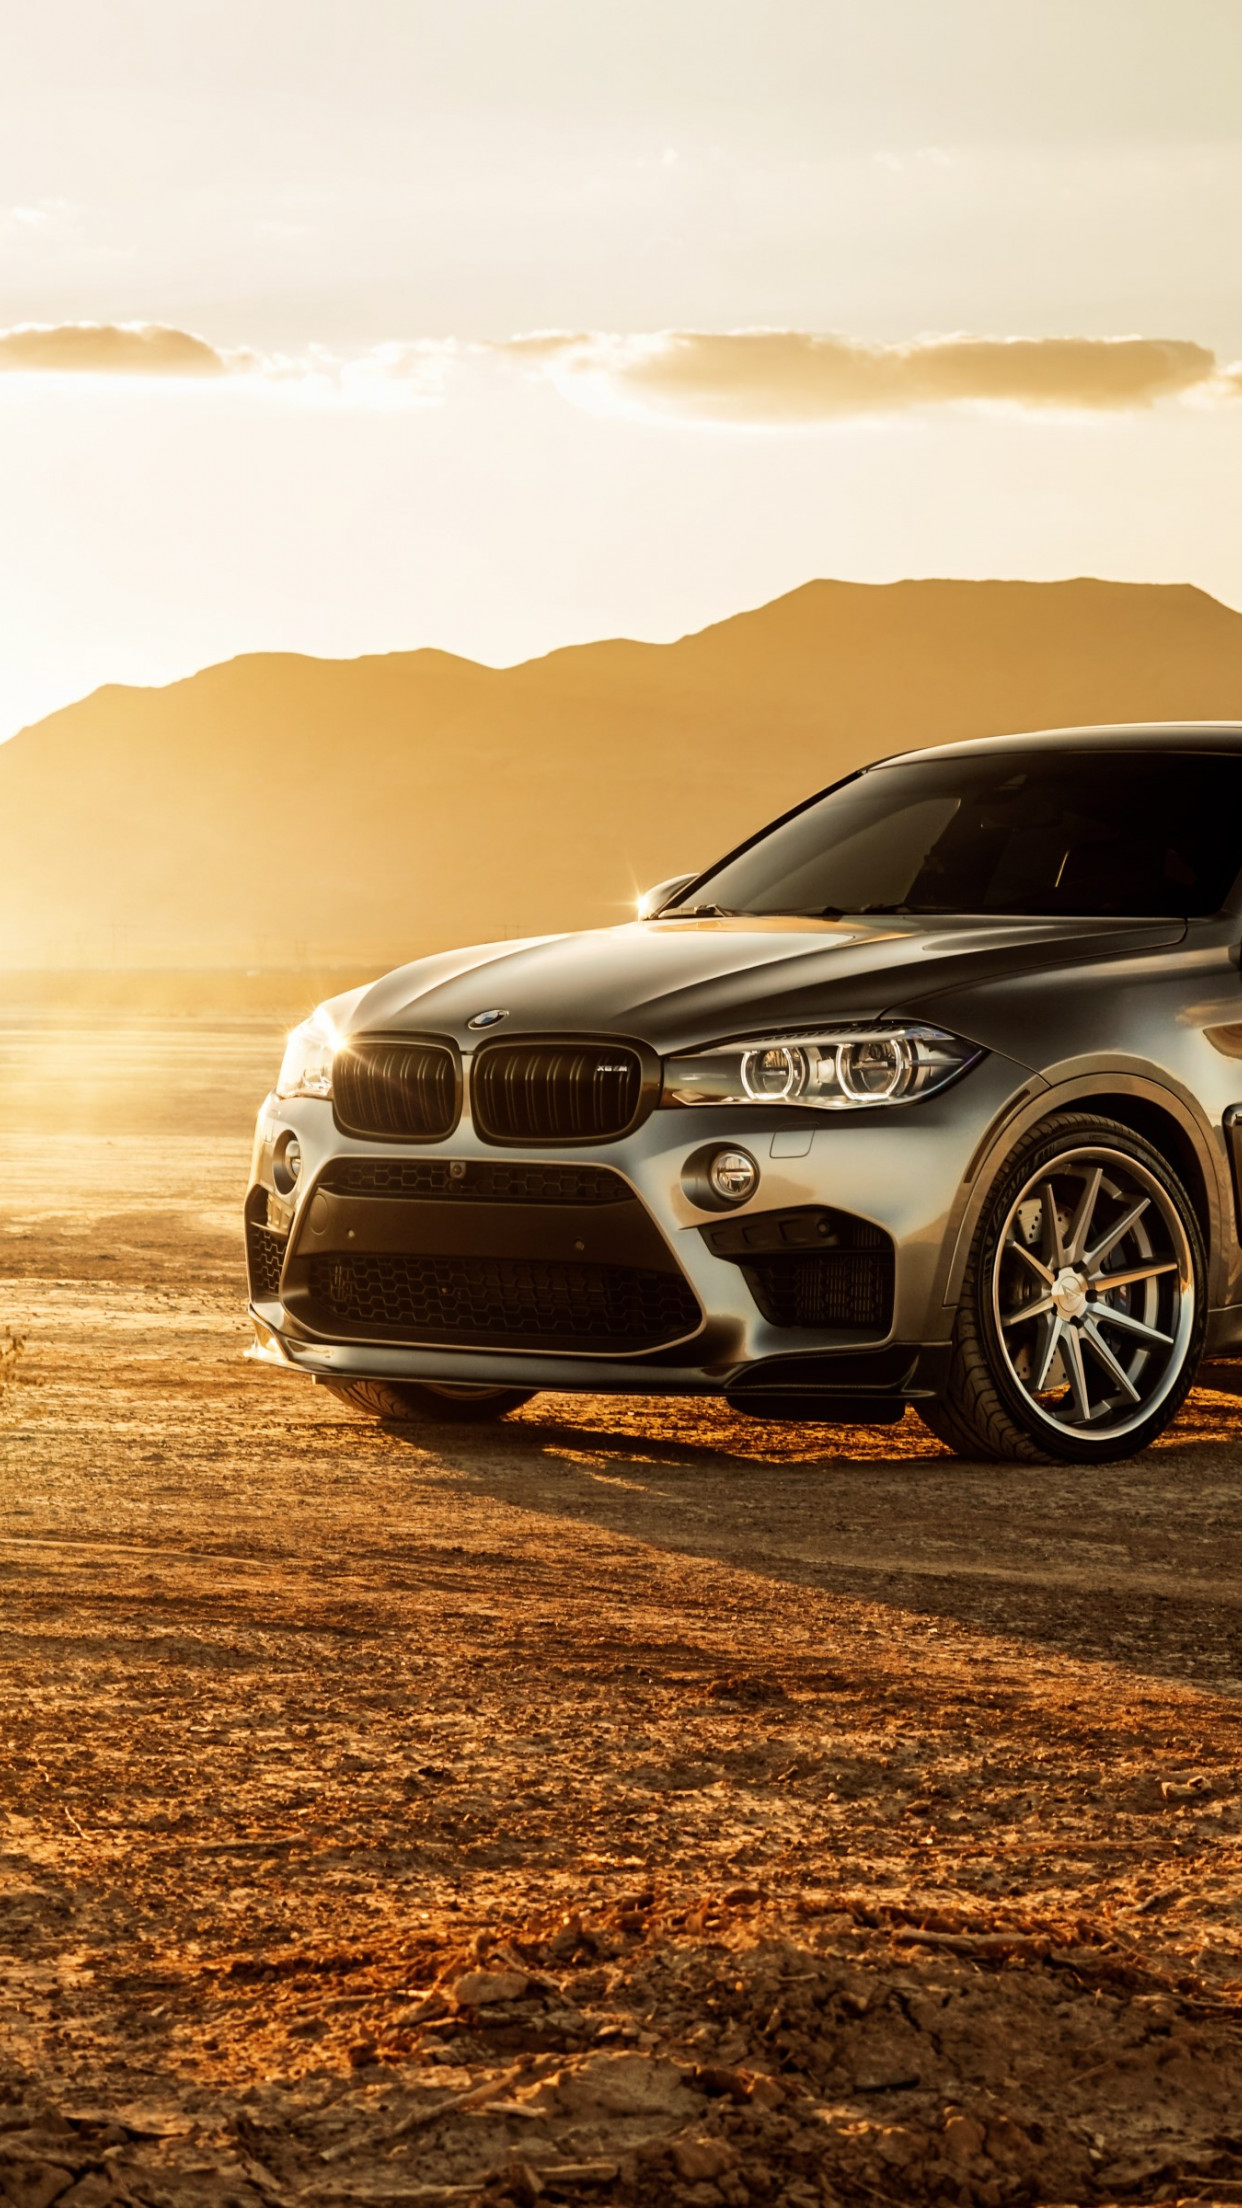 Ferrada BMW X6M Glory | 1242x2208 wallpaper